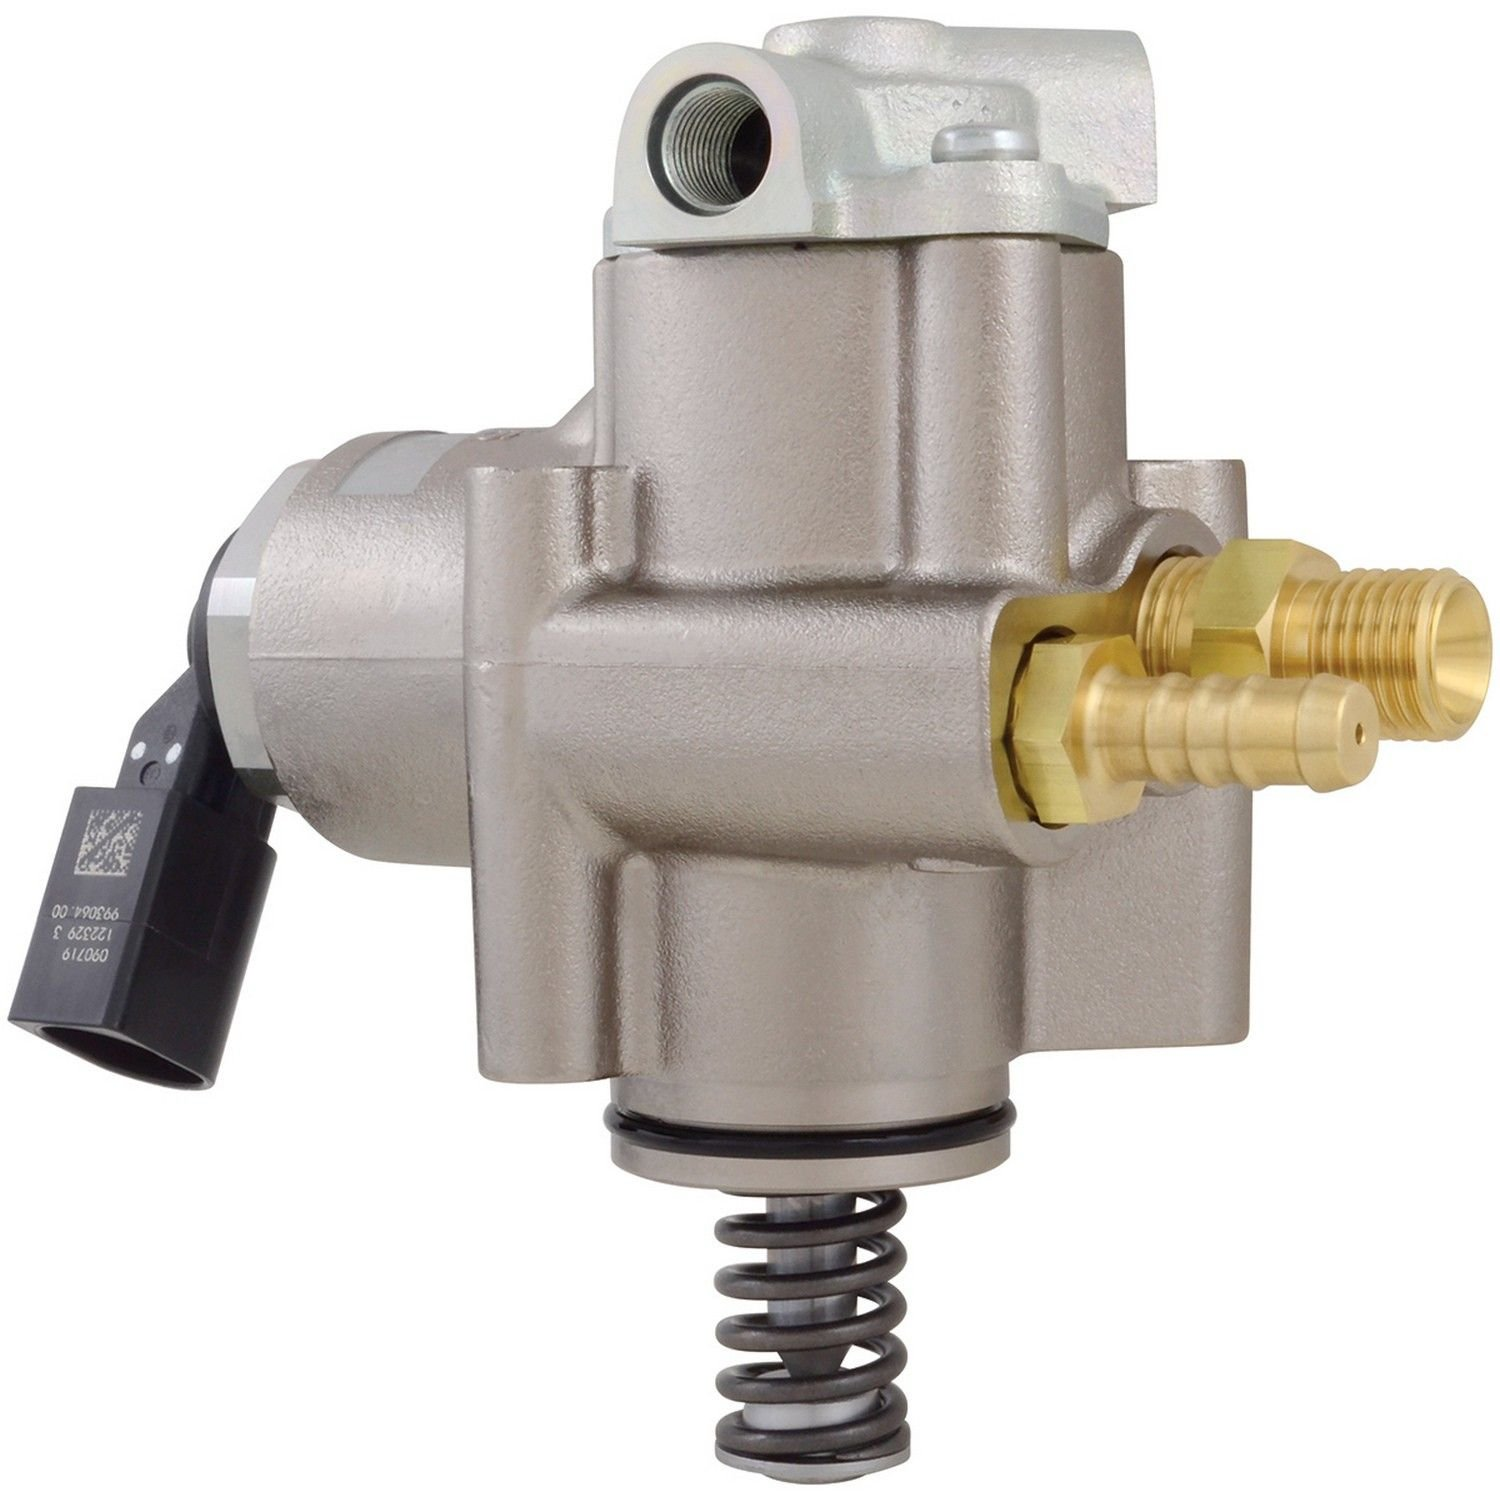 Direct Injection High Pressure Fuel Pump Replacement (Bosch